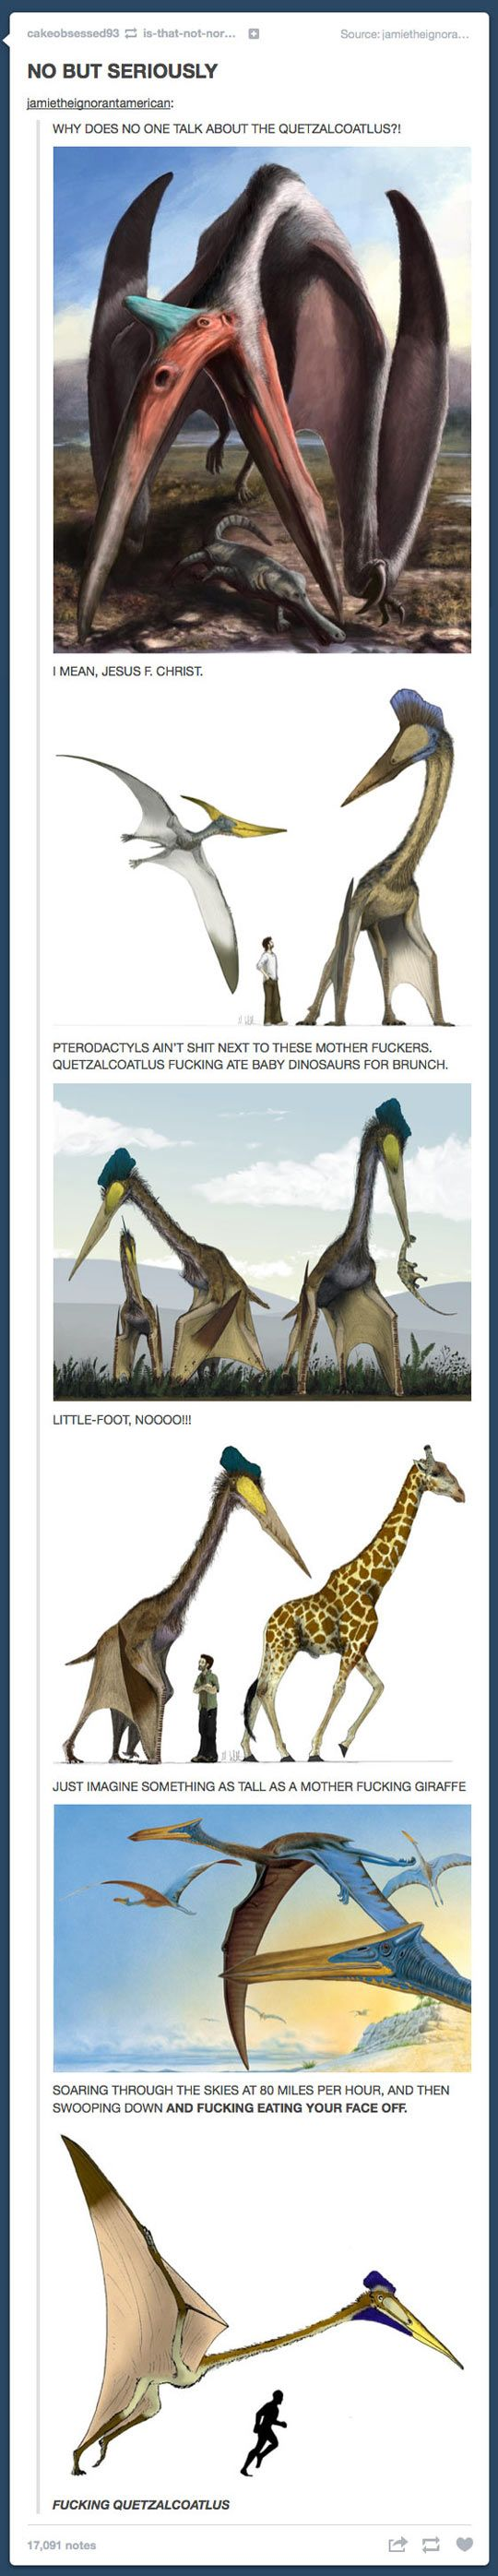 Why DOESN'T anyone talk about the Quetzalcoatlus…it's more terrifying than the Giant Golden-Crowned Flying Fox (look it up)